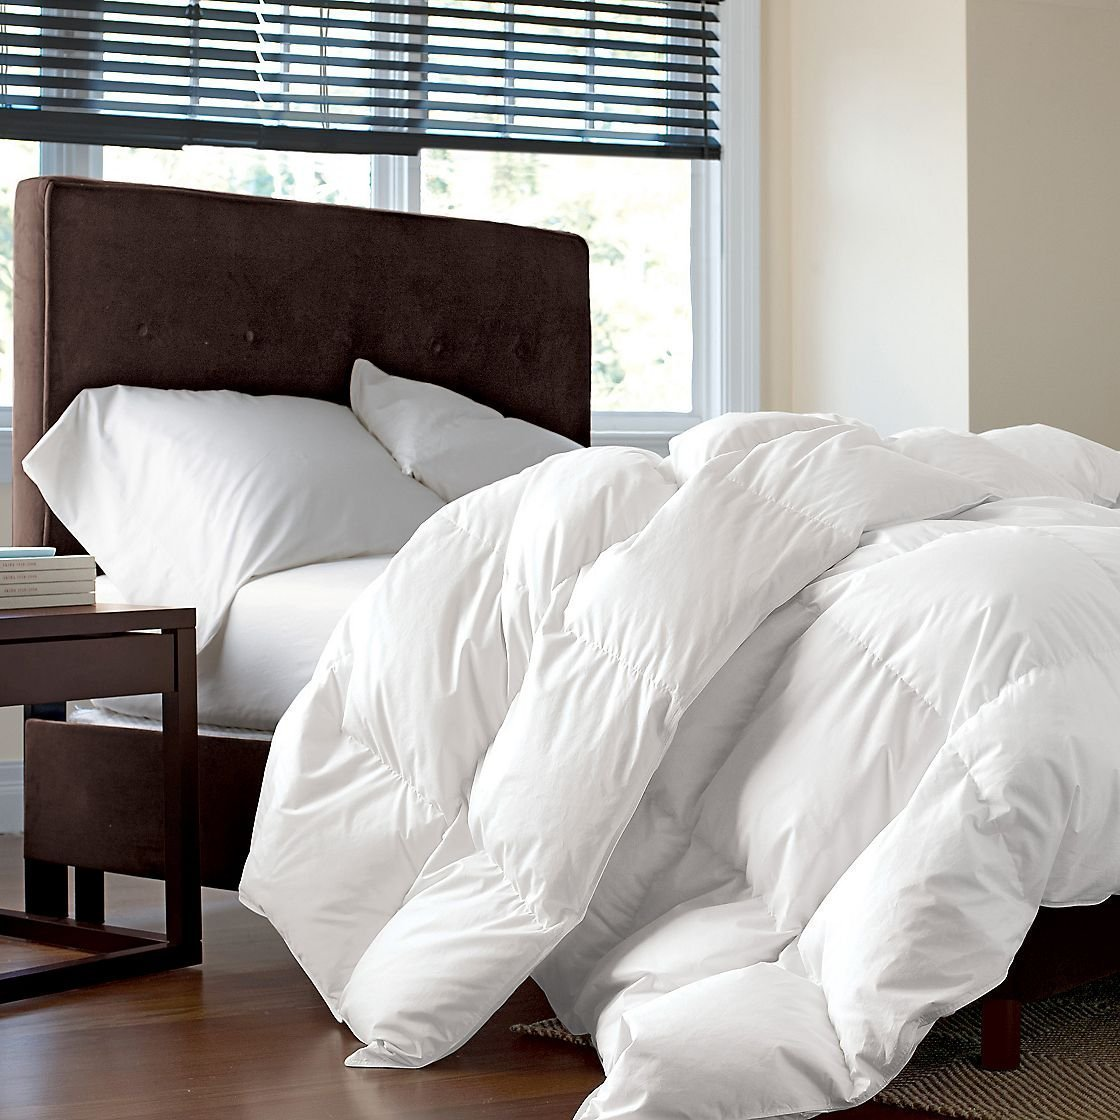 1200 Thread Count Baffle Box Medium Weight GOOSE DOWN Comforter, All Year, White, King